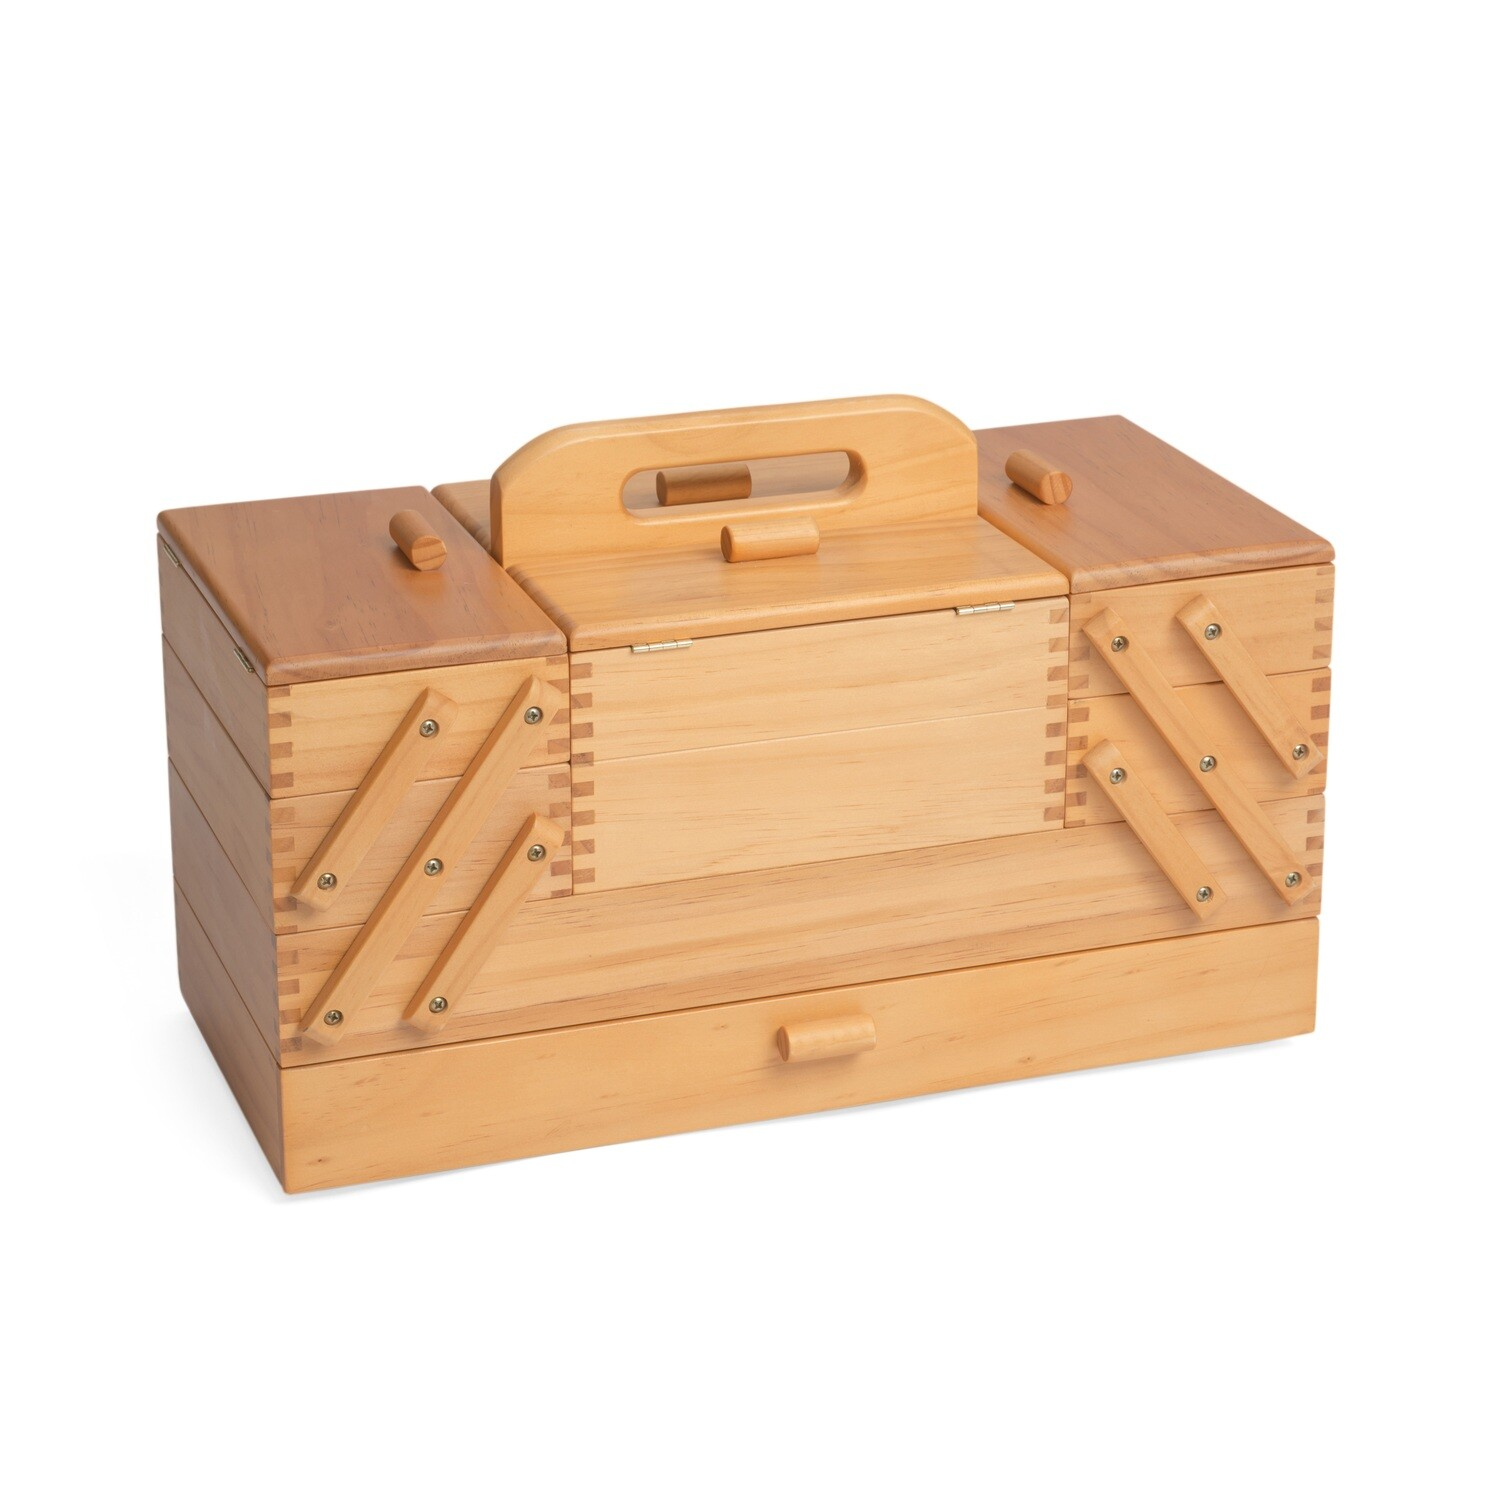 Sewing Box Wood - 4 Tier